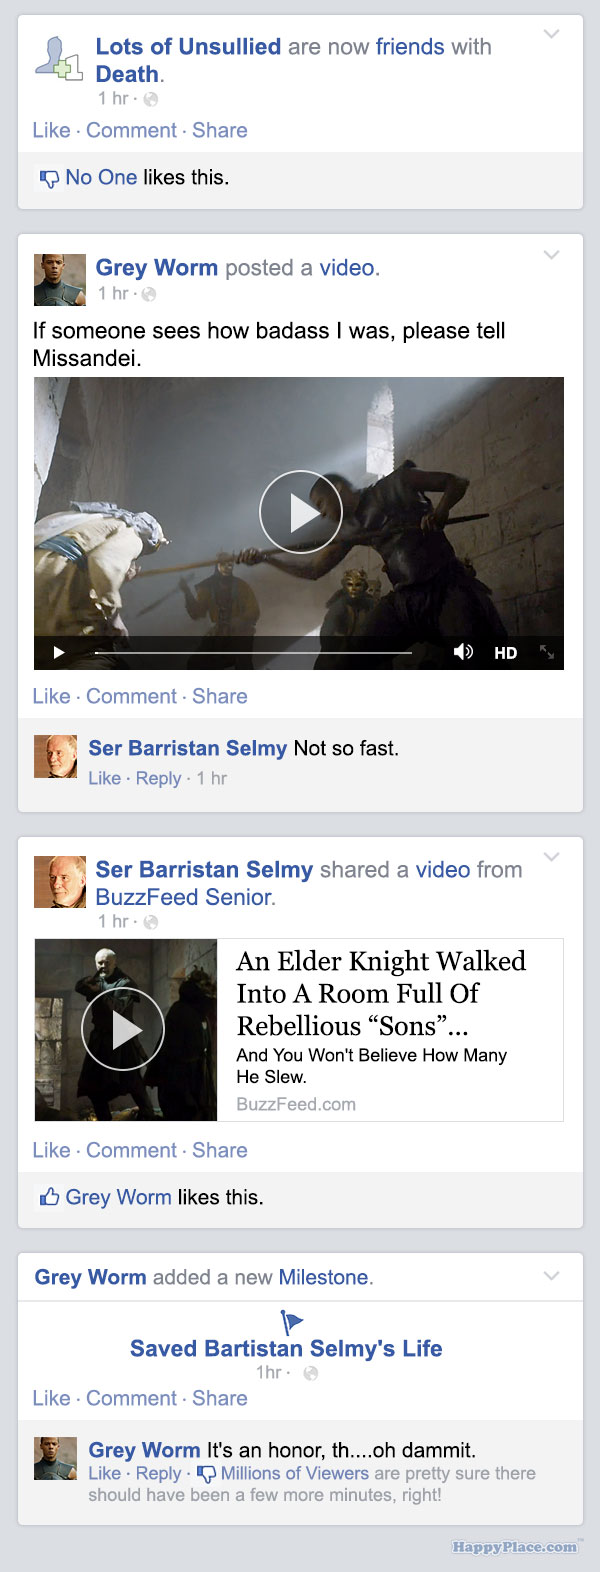 If Game of Thrones took place entirely on Facebook — Season 5, Episode 4